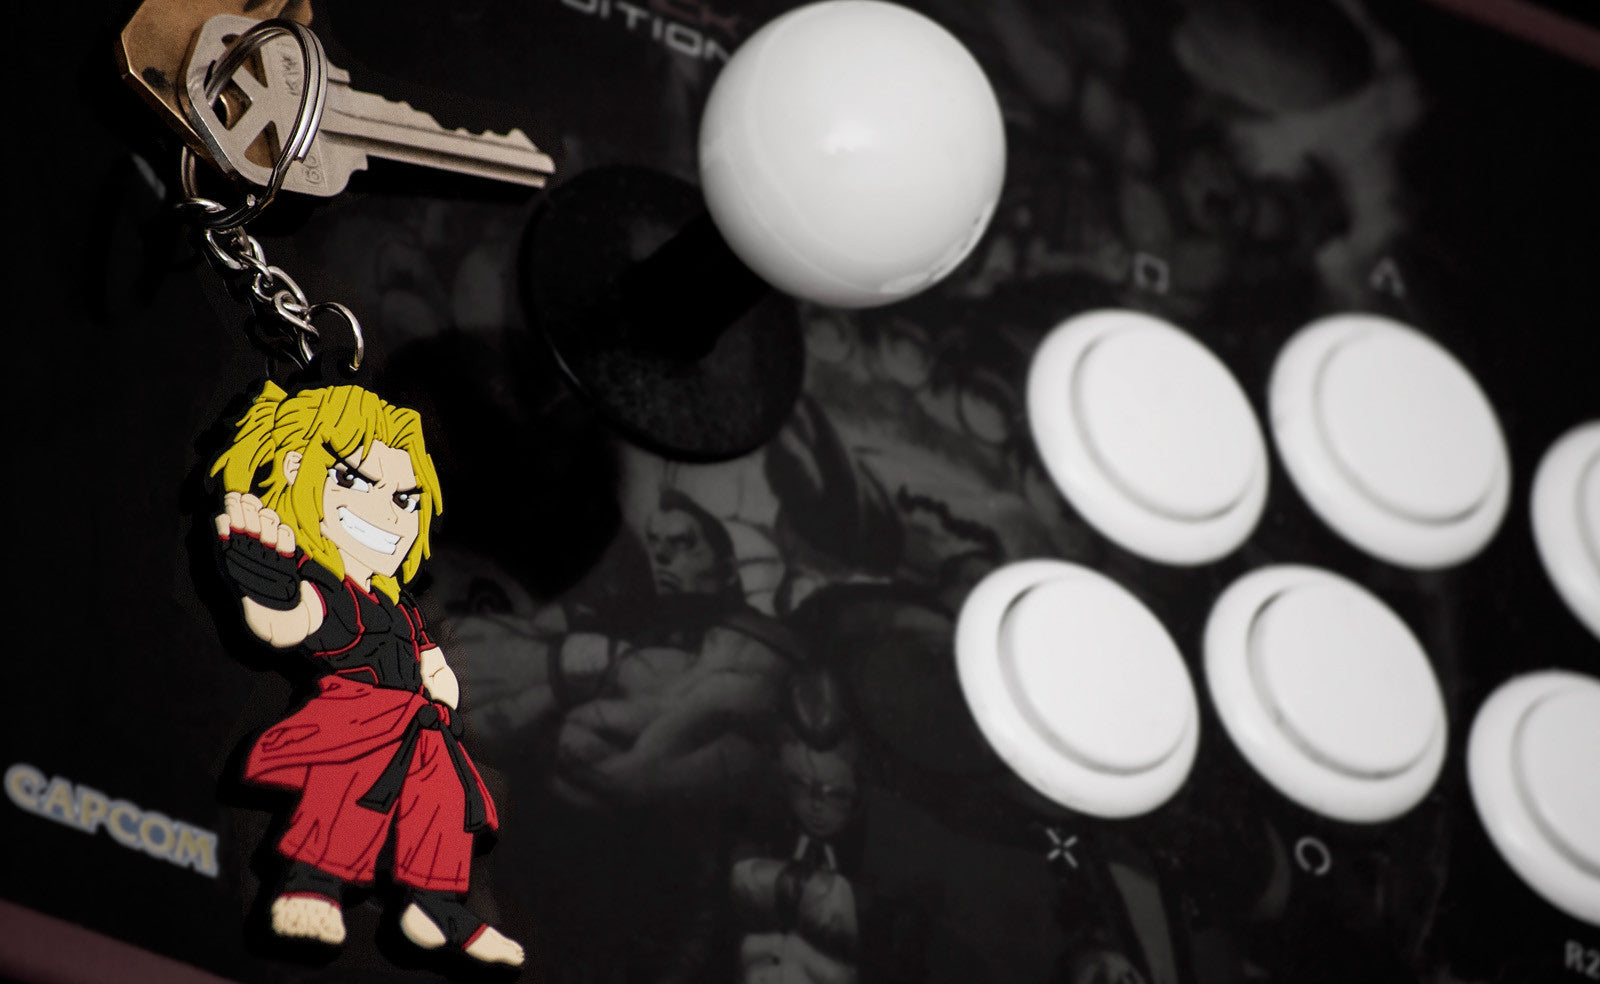 Street Fighter Ken Keychain by Eighty Sixed